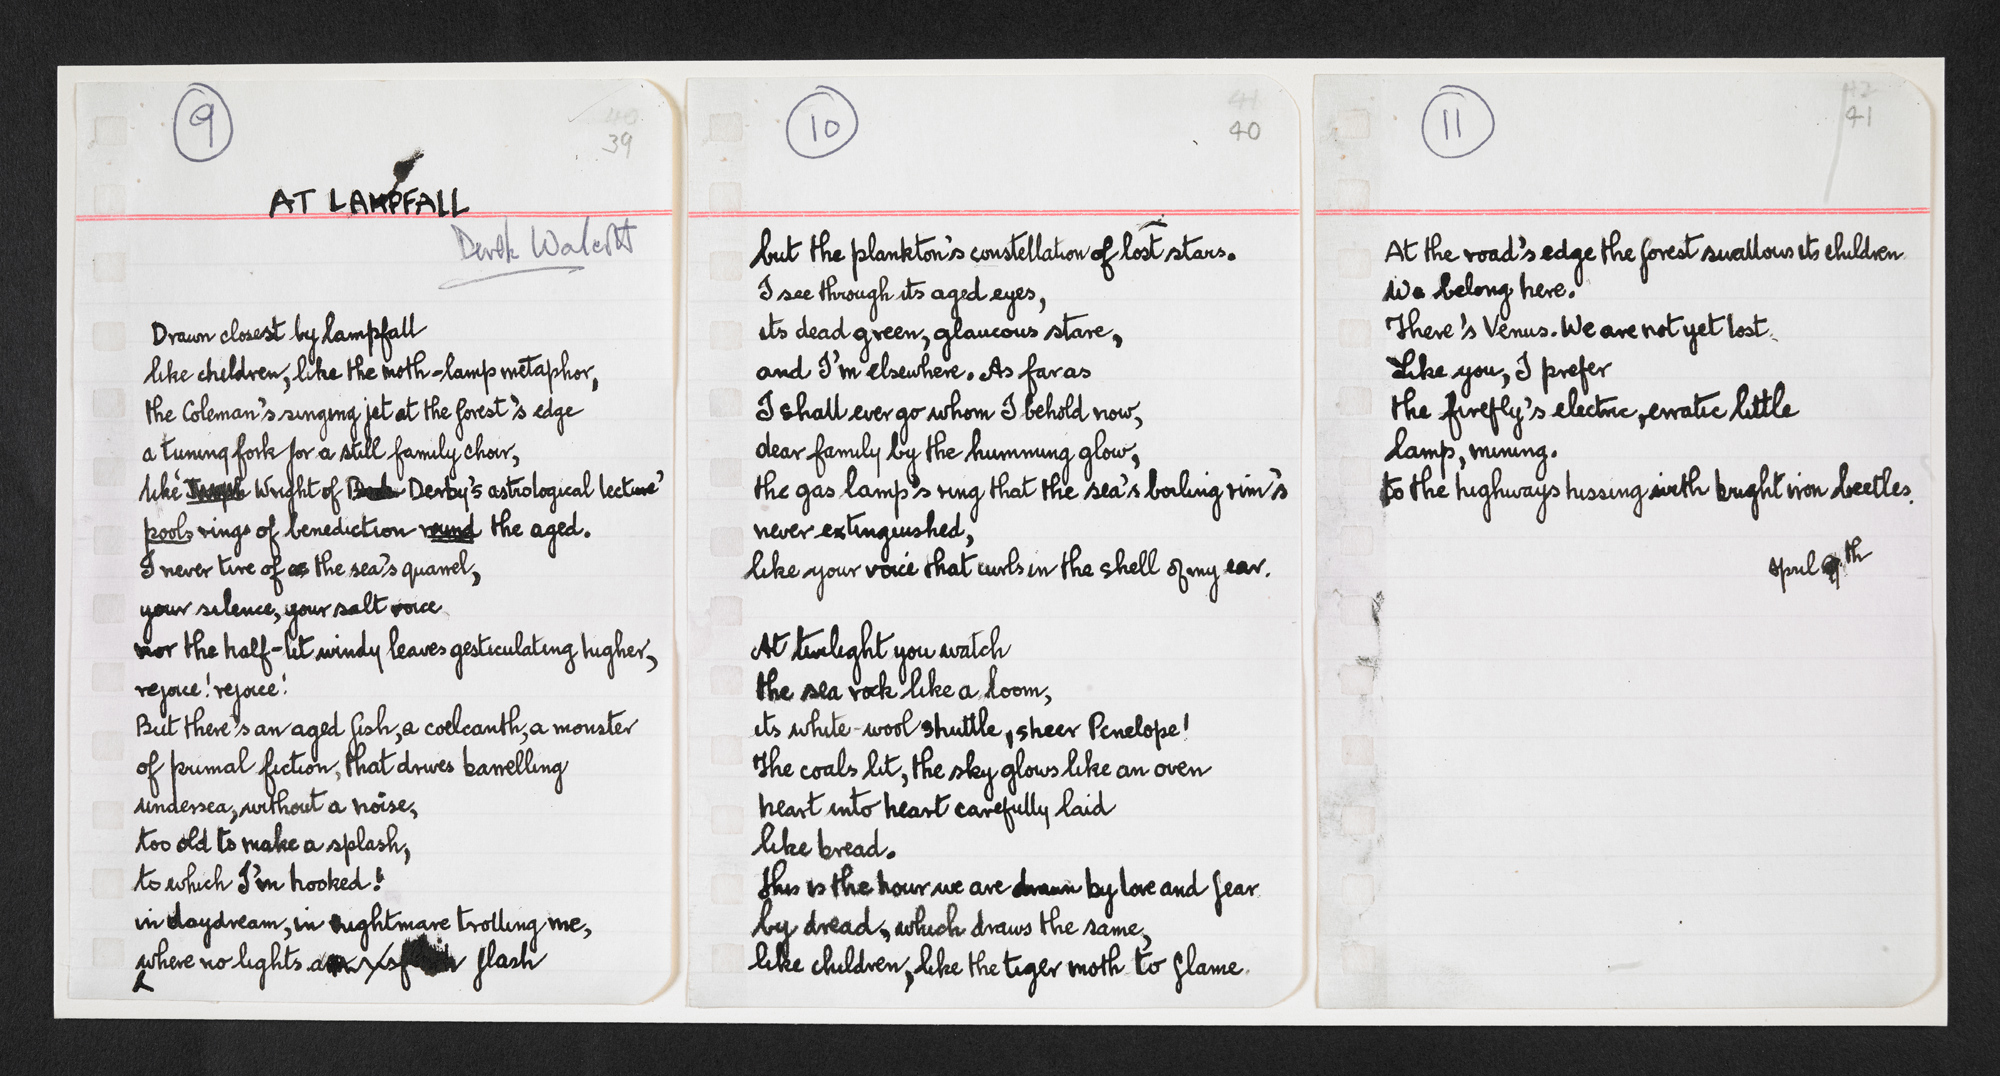 Typescript of Derek Walcott's At Lampfall Add MS 52594